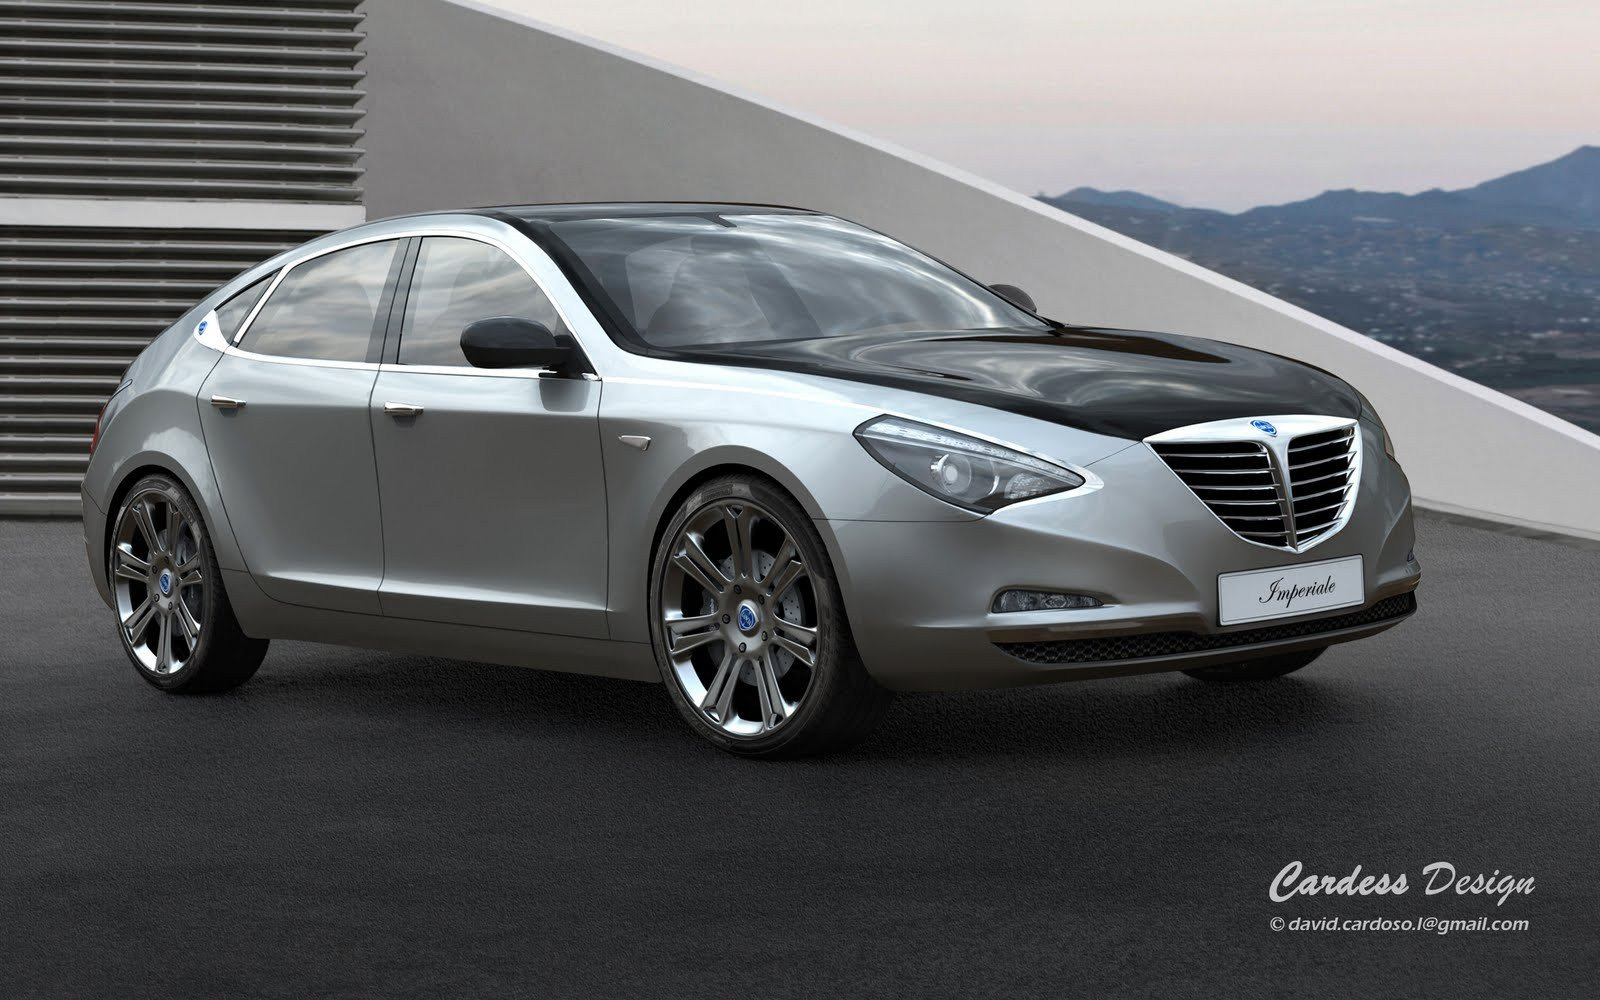 New Lancia Imperiale Concept Autoomagazine On This Month